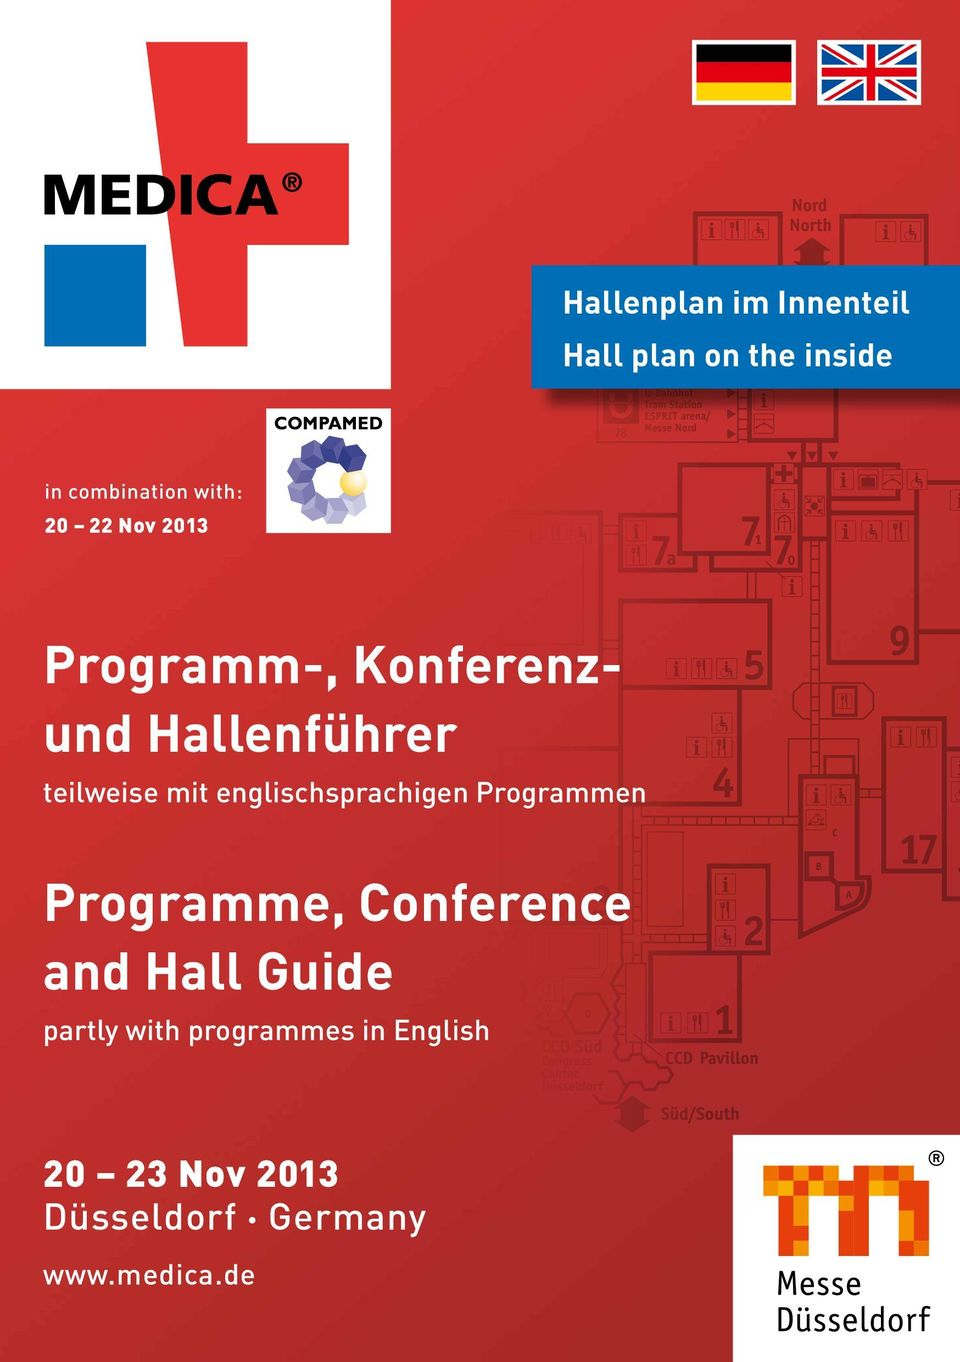 englischsprachigen Programmen Programme, Conference and Hall Guide